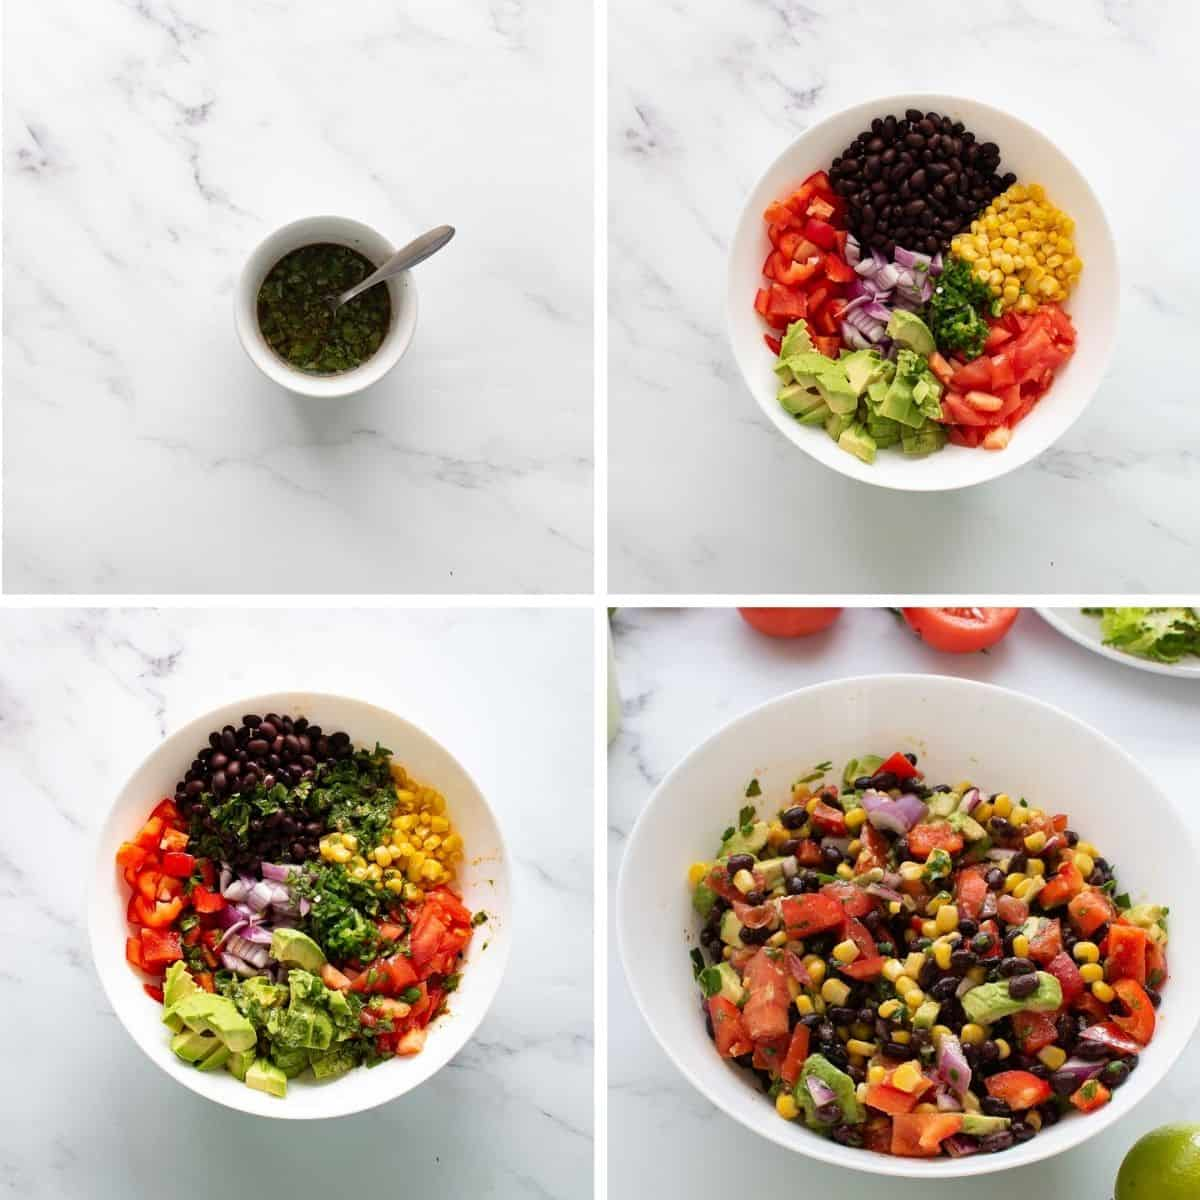 Step by step images showing how to make black bean corn salad.